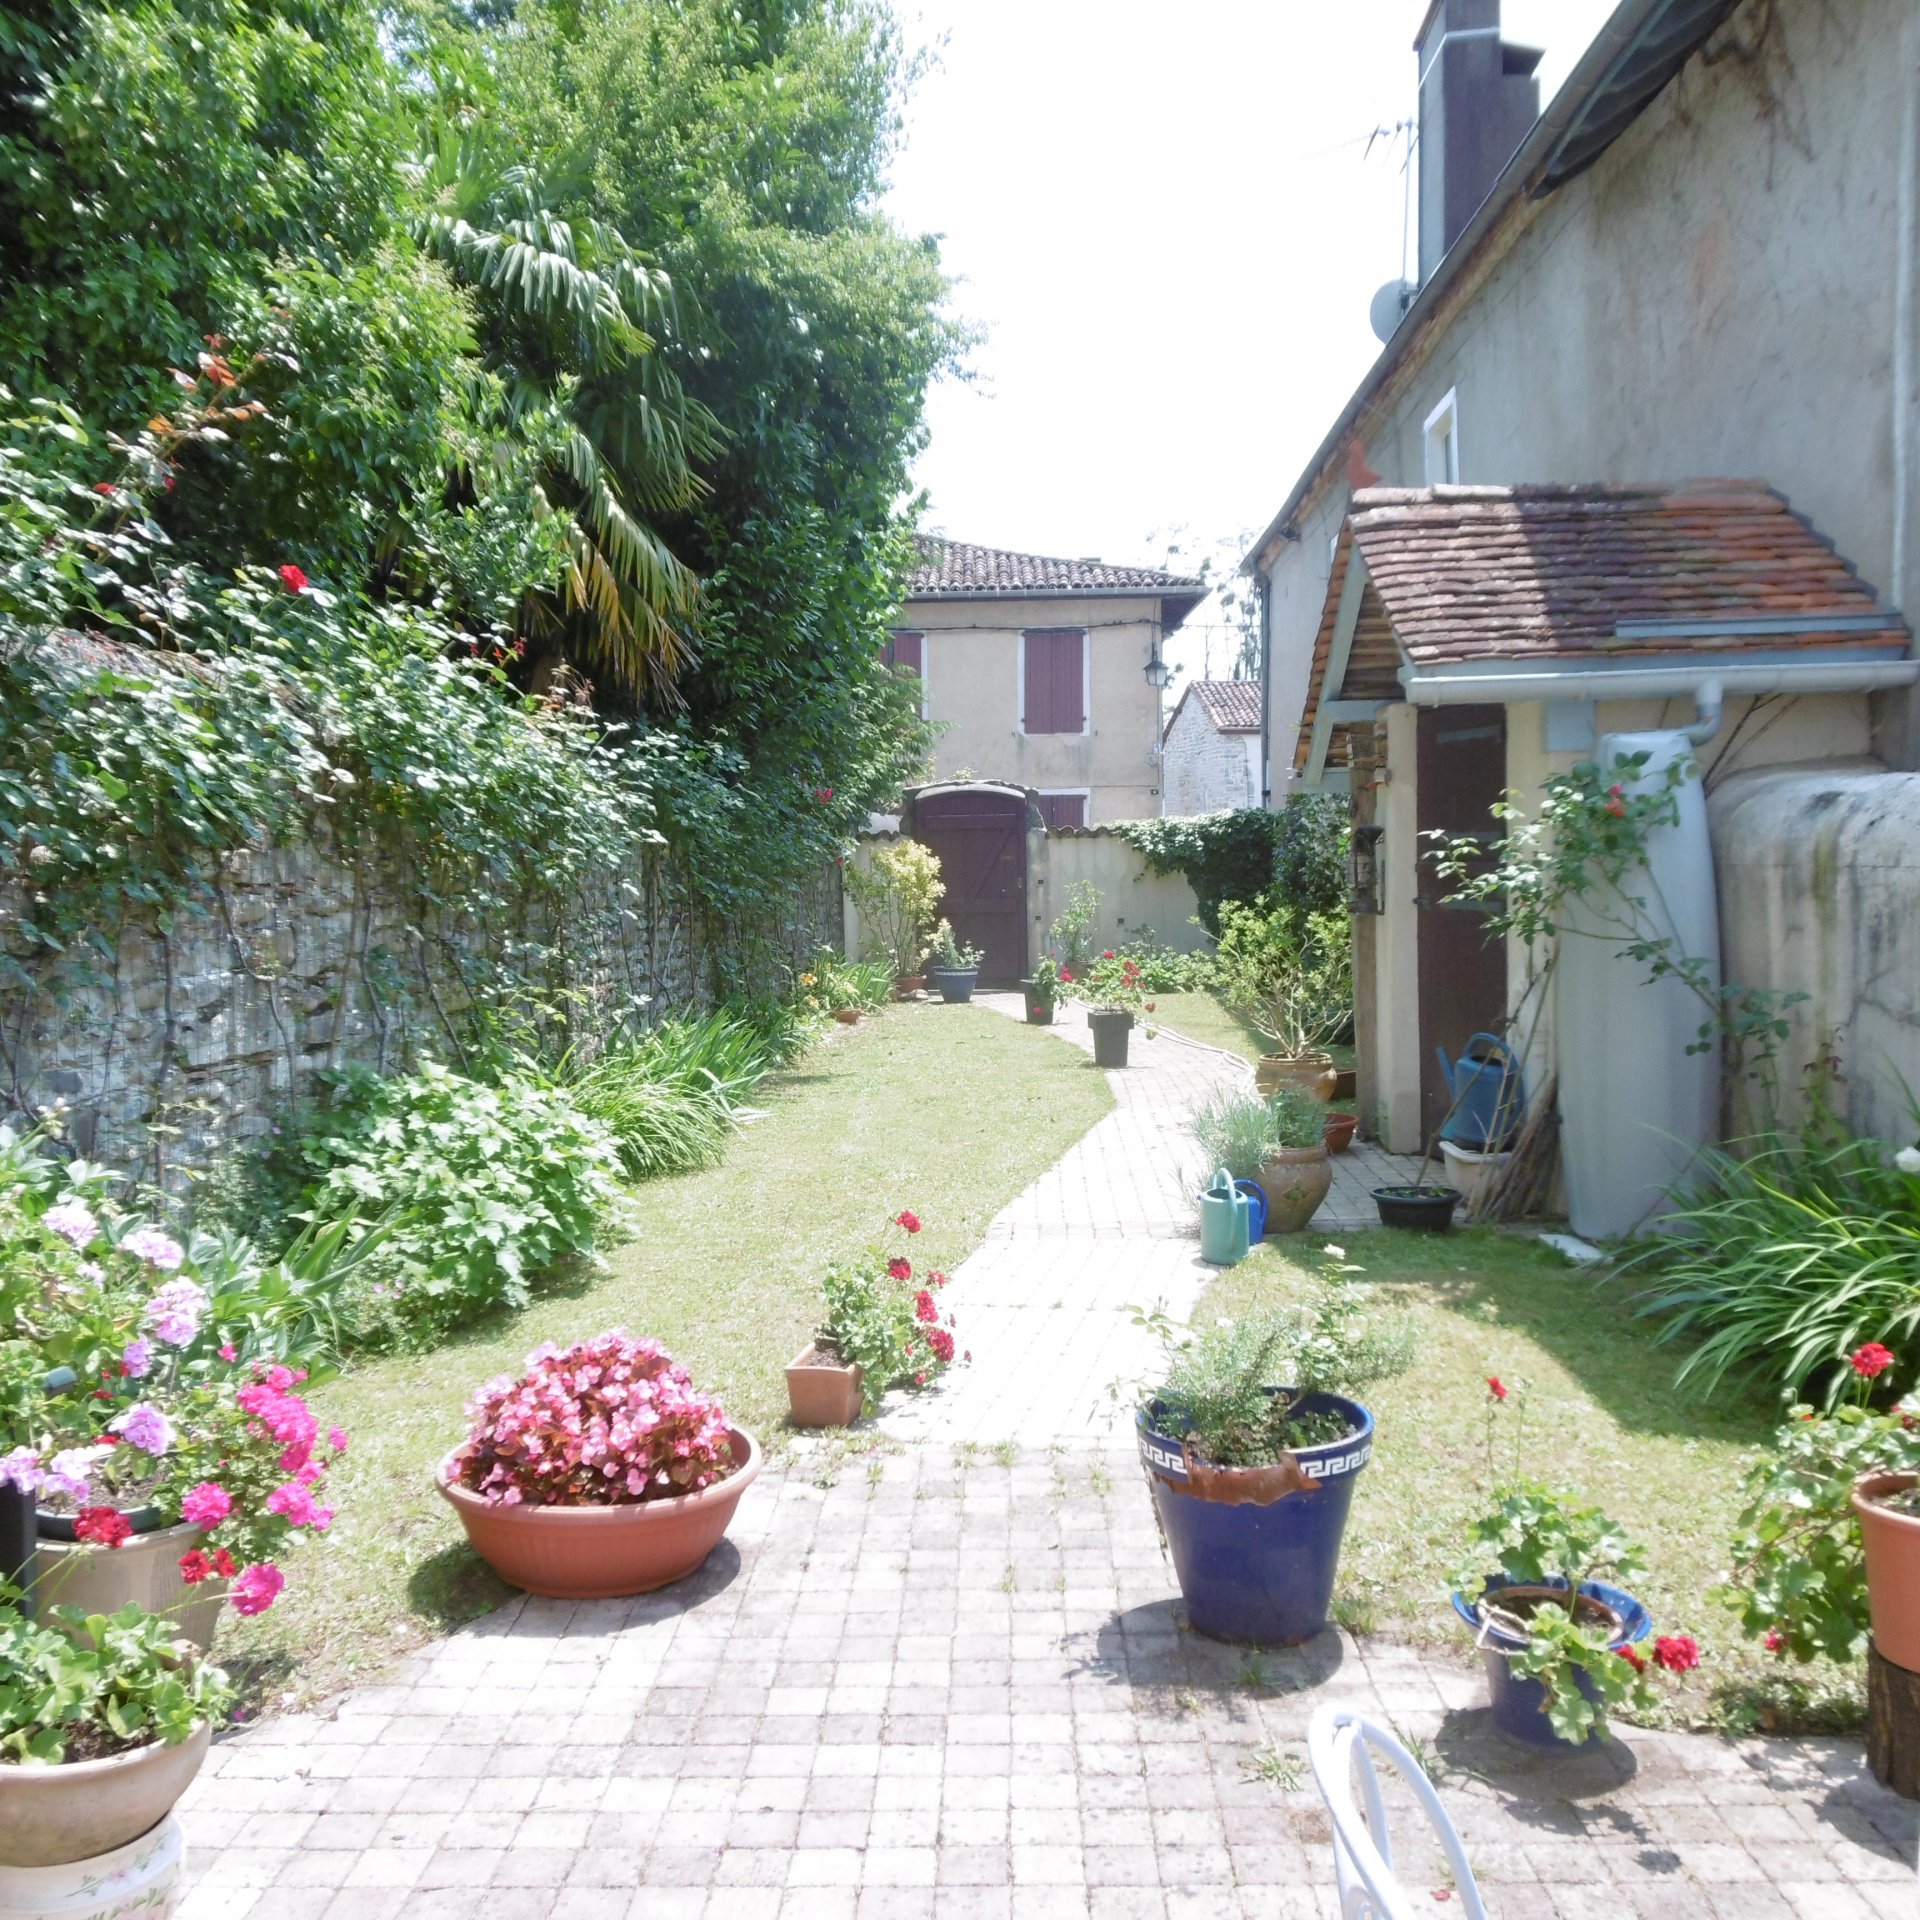 SAUVETERRE DE BEARN - Lovely large 18th century town house with garden, courtyard and outside parkin